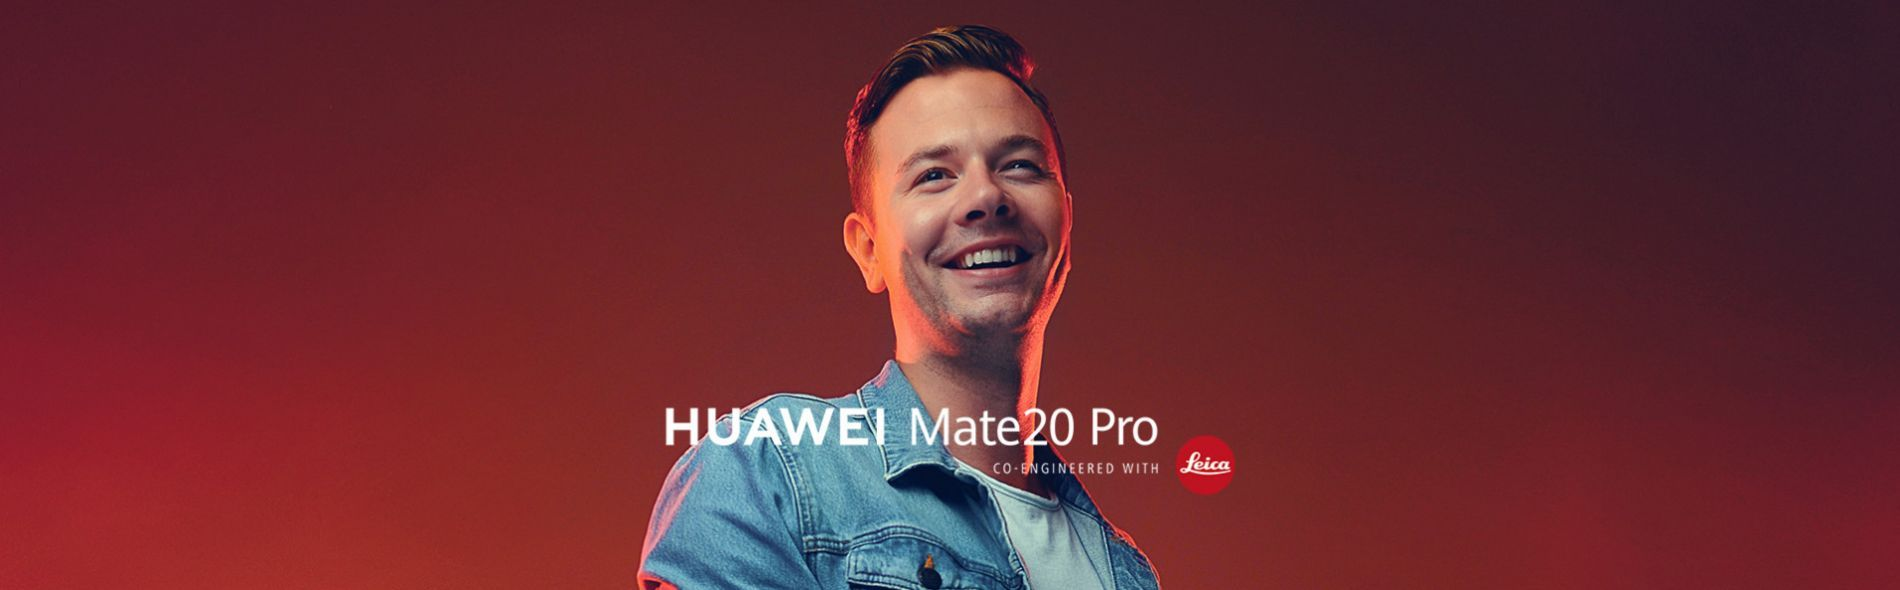 How Huawei promoted their new smartphone with Sam Feldt